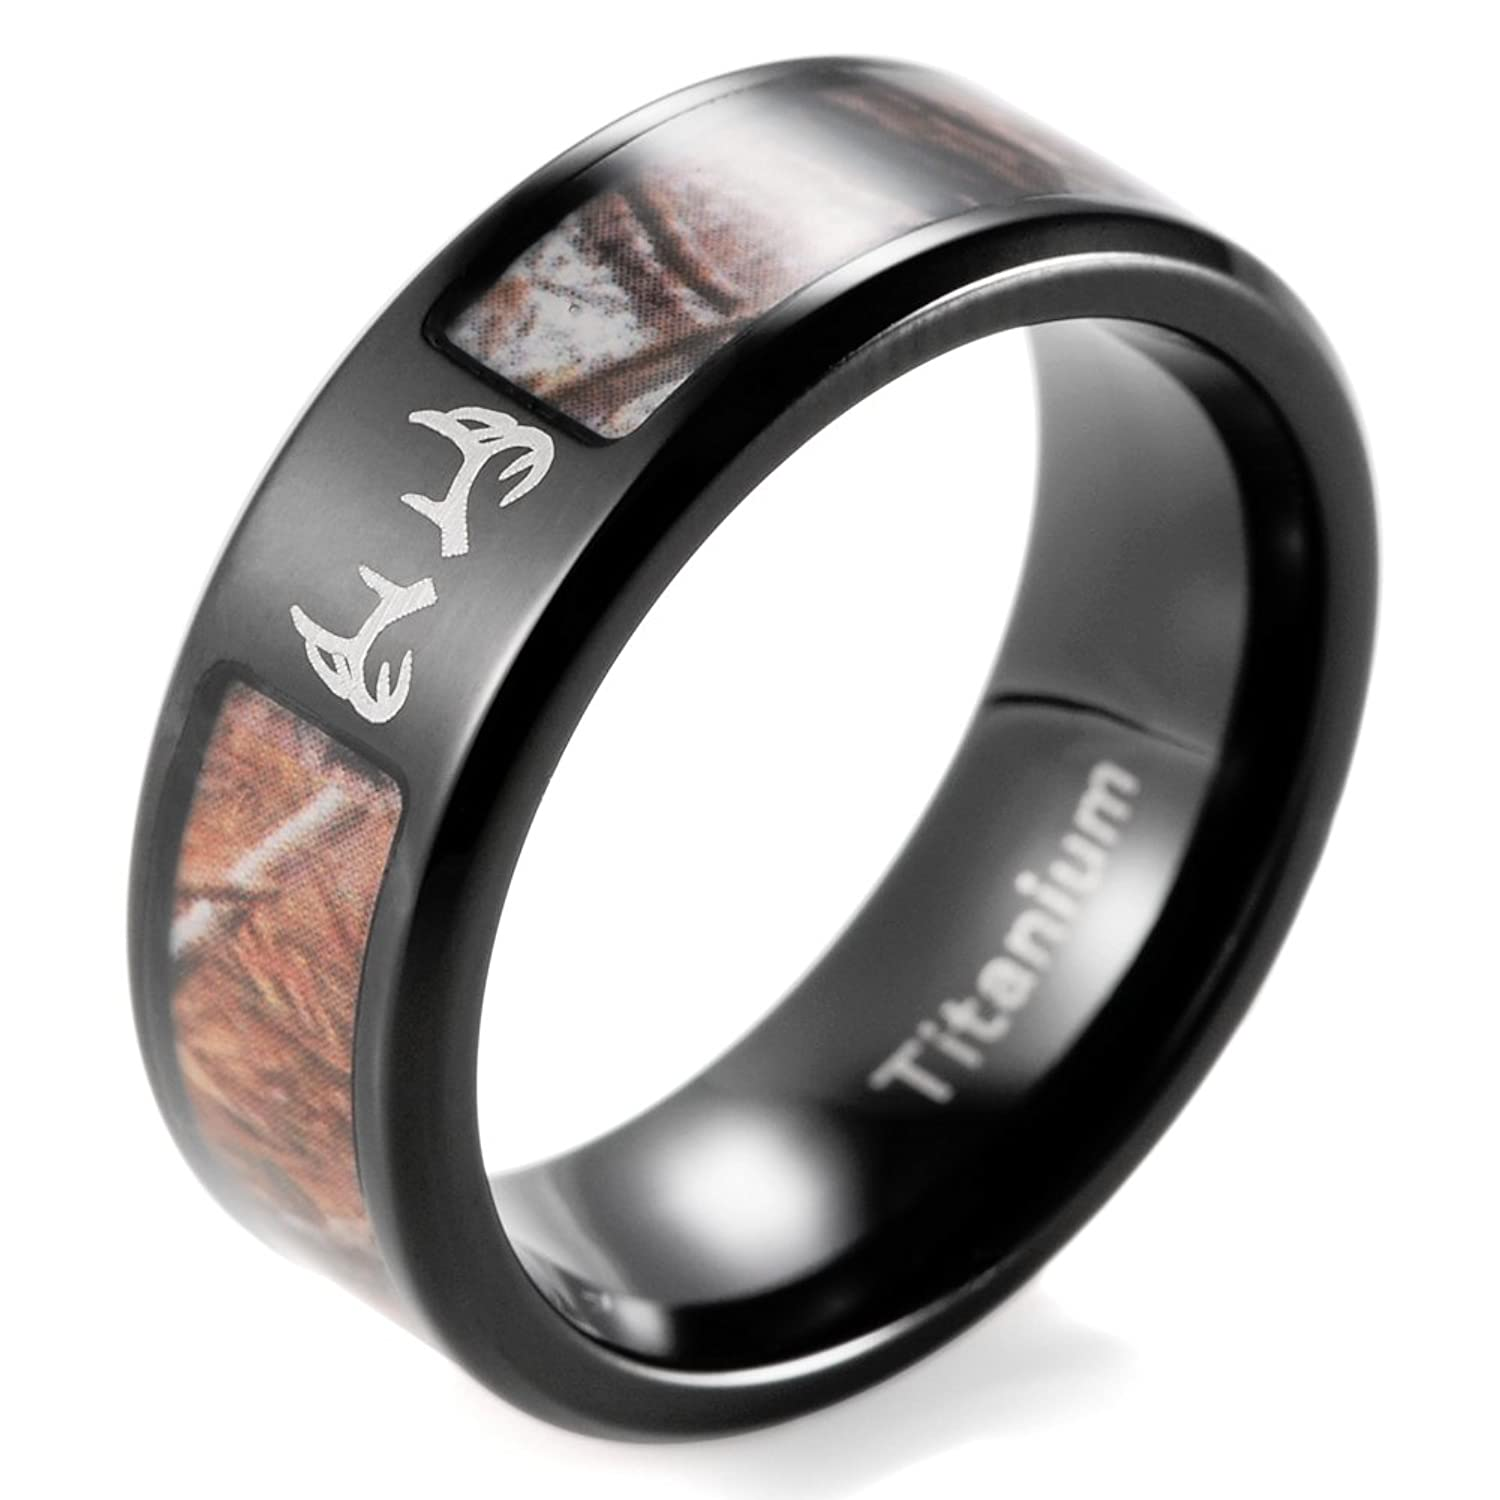 shardon mens 8mm ip black titanium tree camo ring with engraved deer antleramazoncom - Hunting Wedding Rings